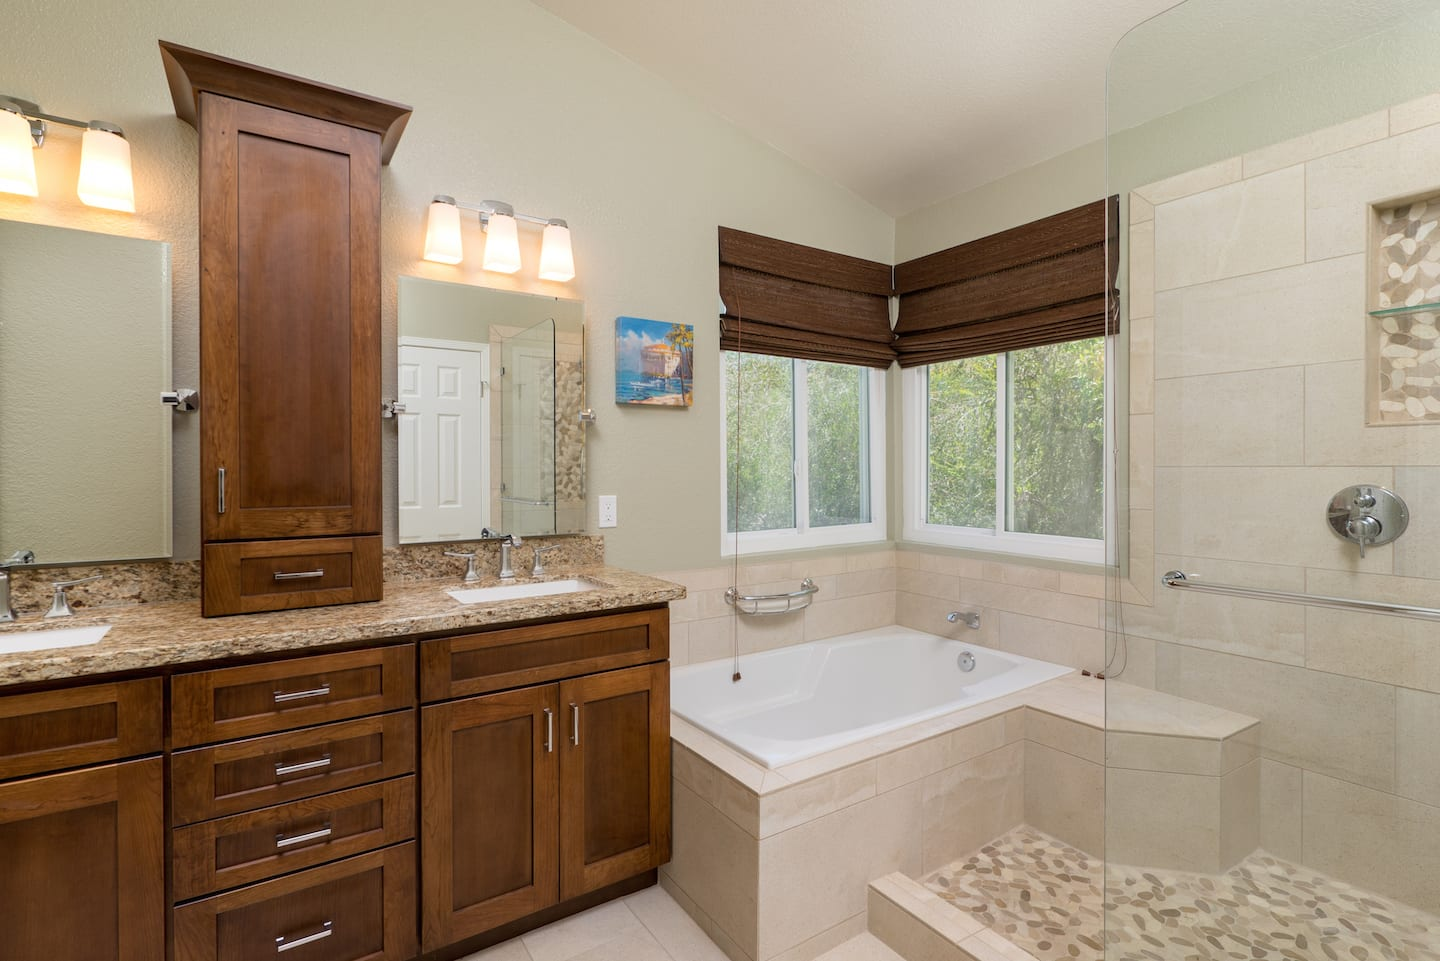 Remodel Bathroom Price bathroom remodeling - planning and hiring | angie's list